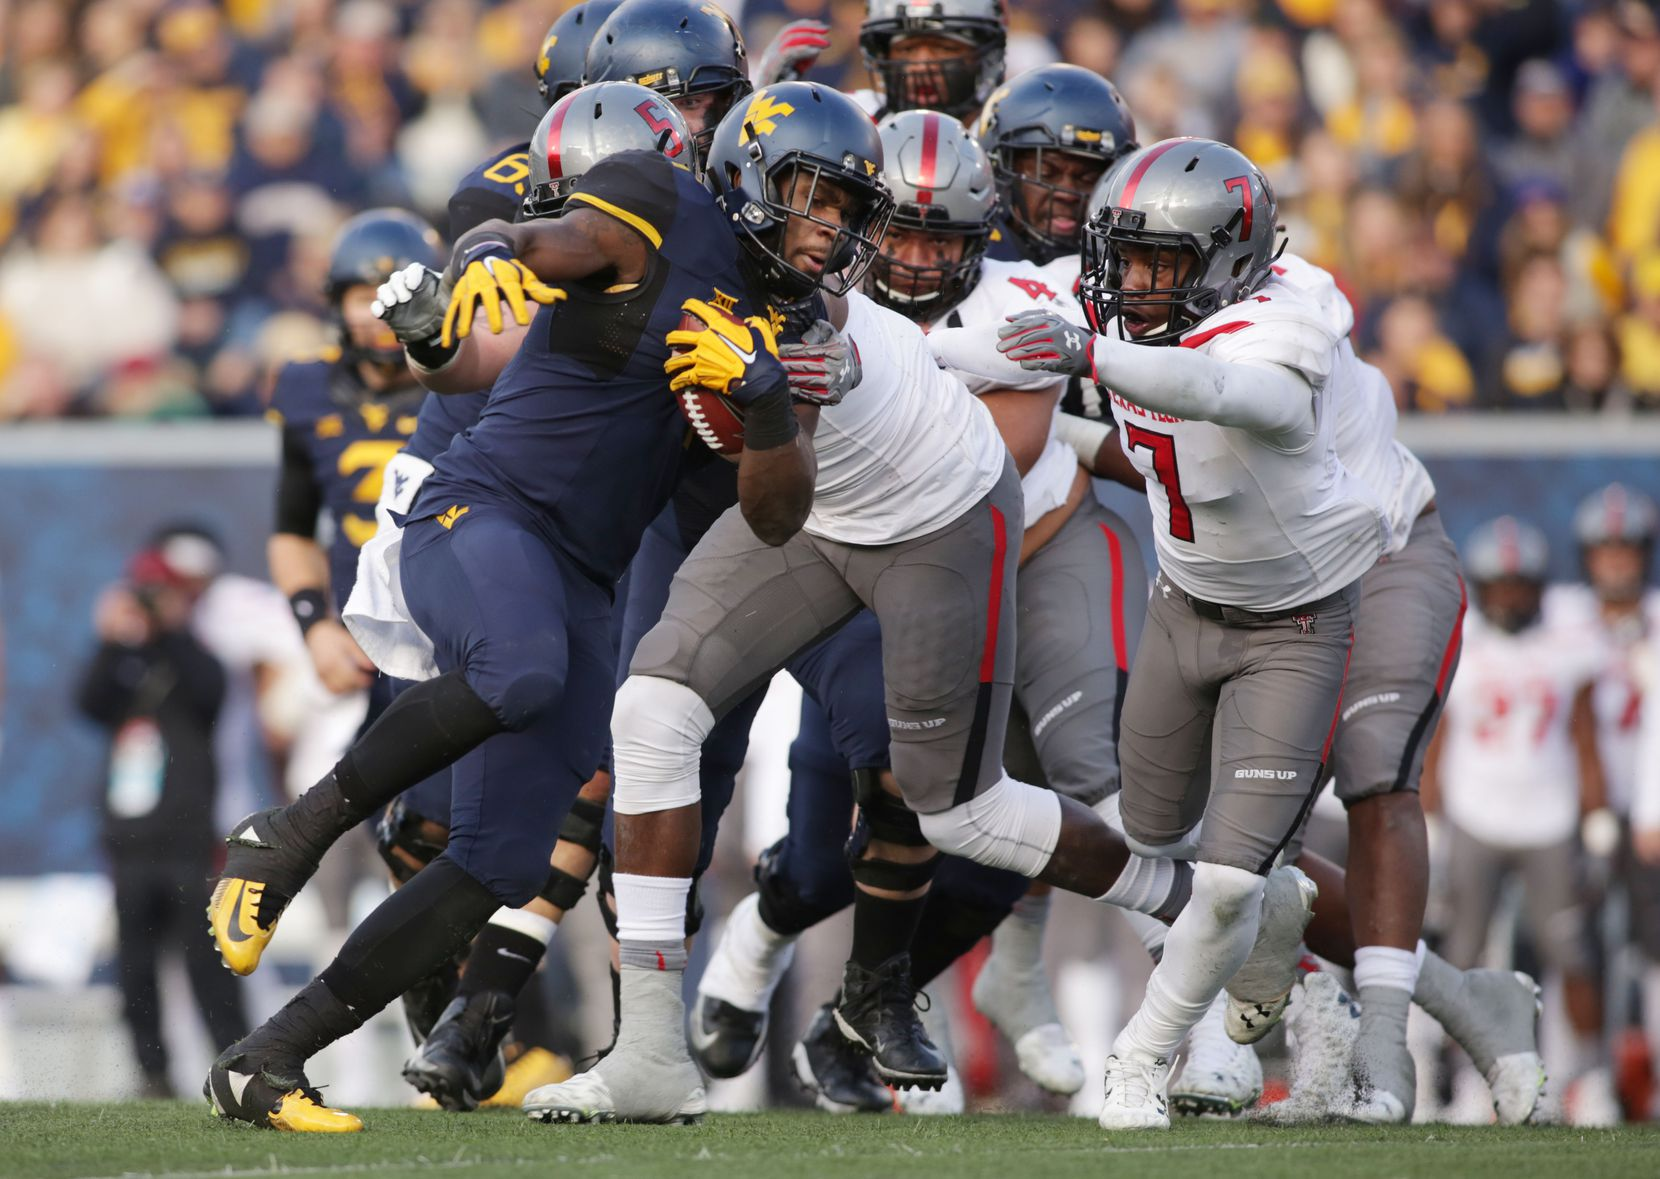 West Virginia running back Wendell Smallwood (4) is tackled by Texas Tech defensive lineman Gary Moore (5) during the second half of an NCAA college football game, Saturday, Nov. 7, 2015, in Morgantown, W.Va. West Virginia won 31-26. (AP Photo/Raymond Thompson)